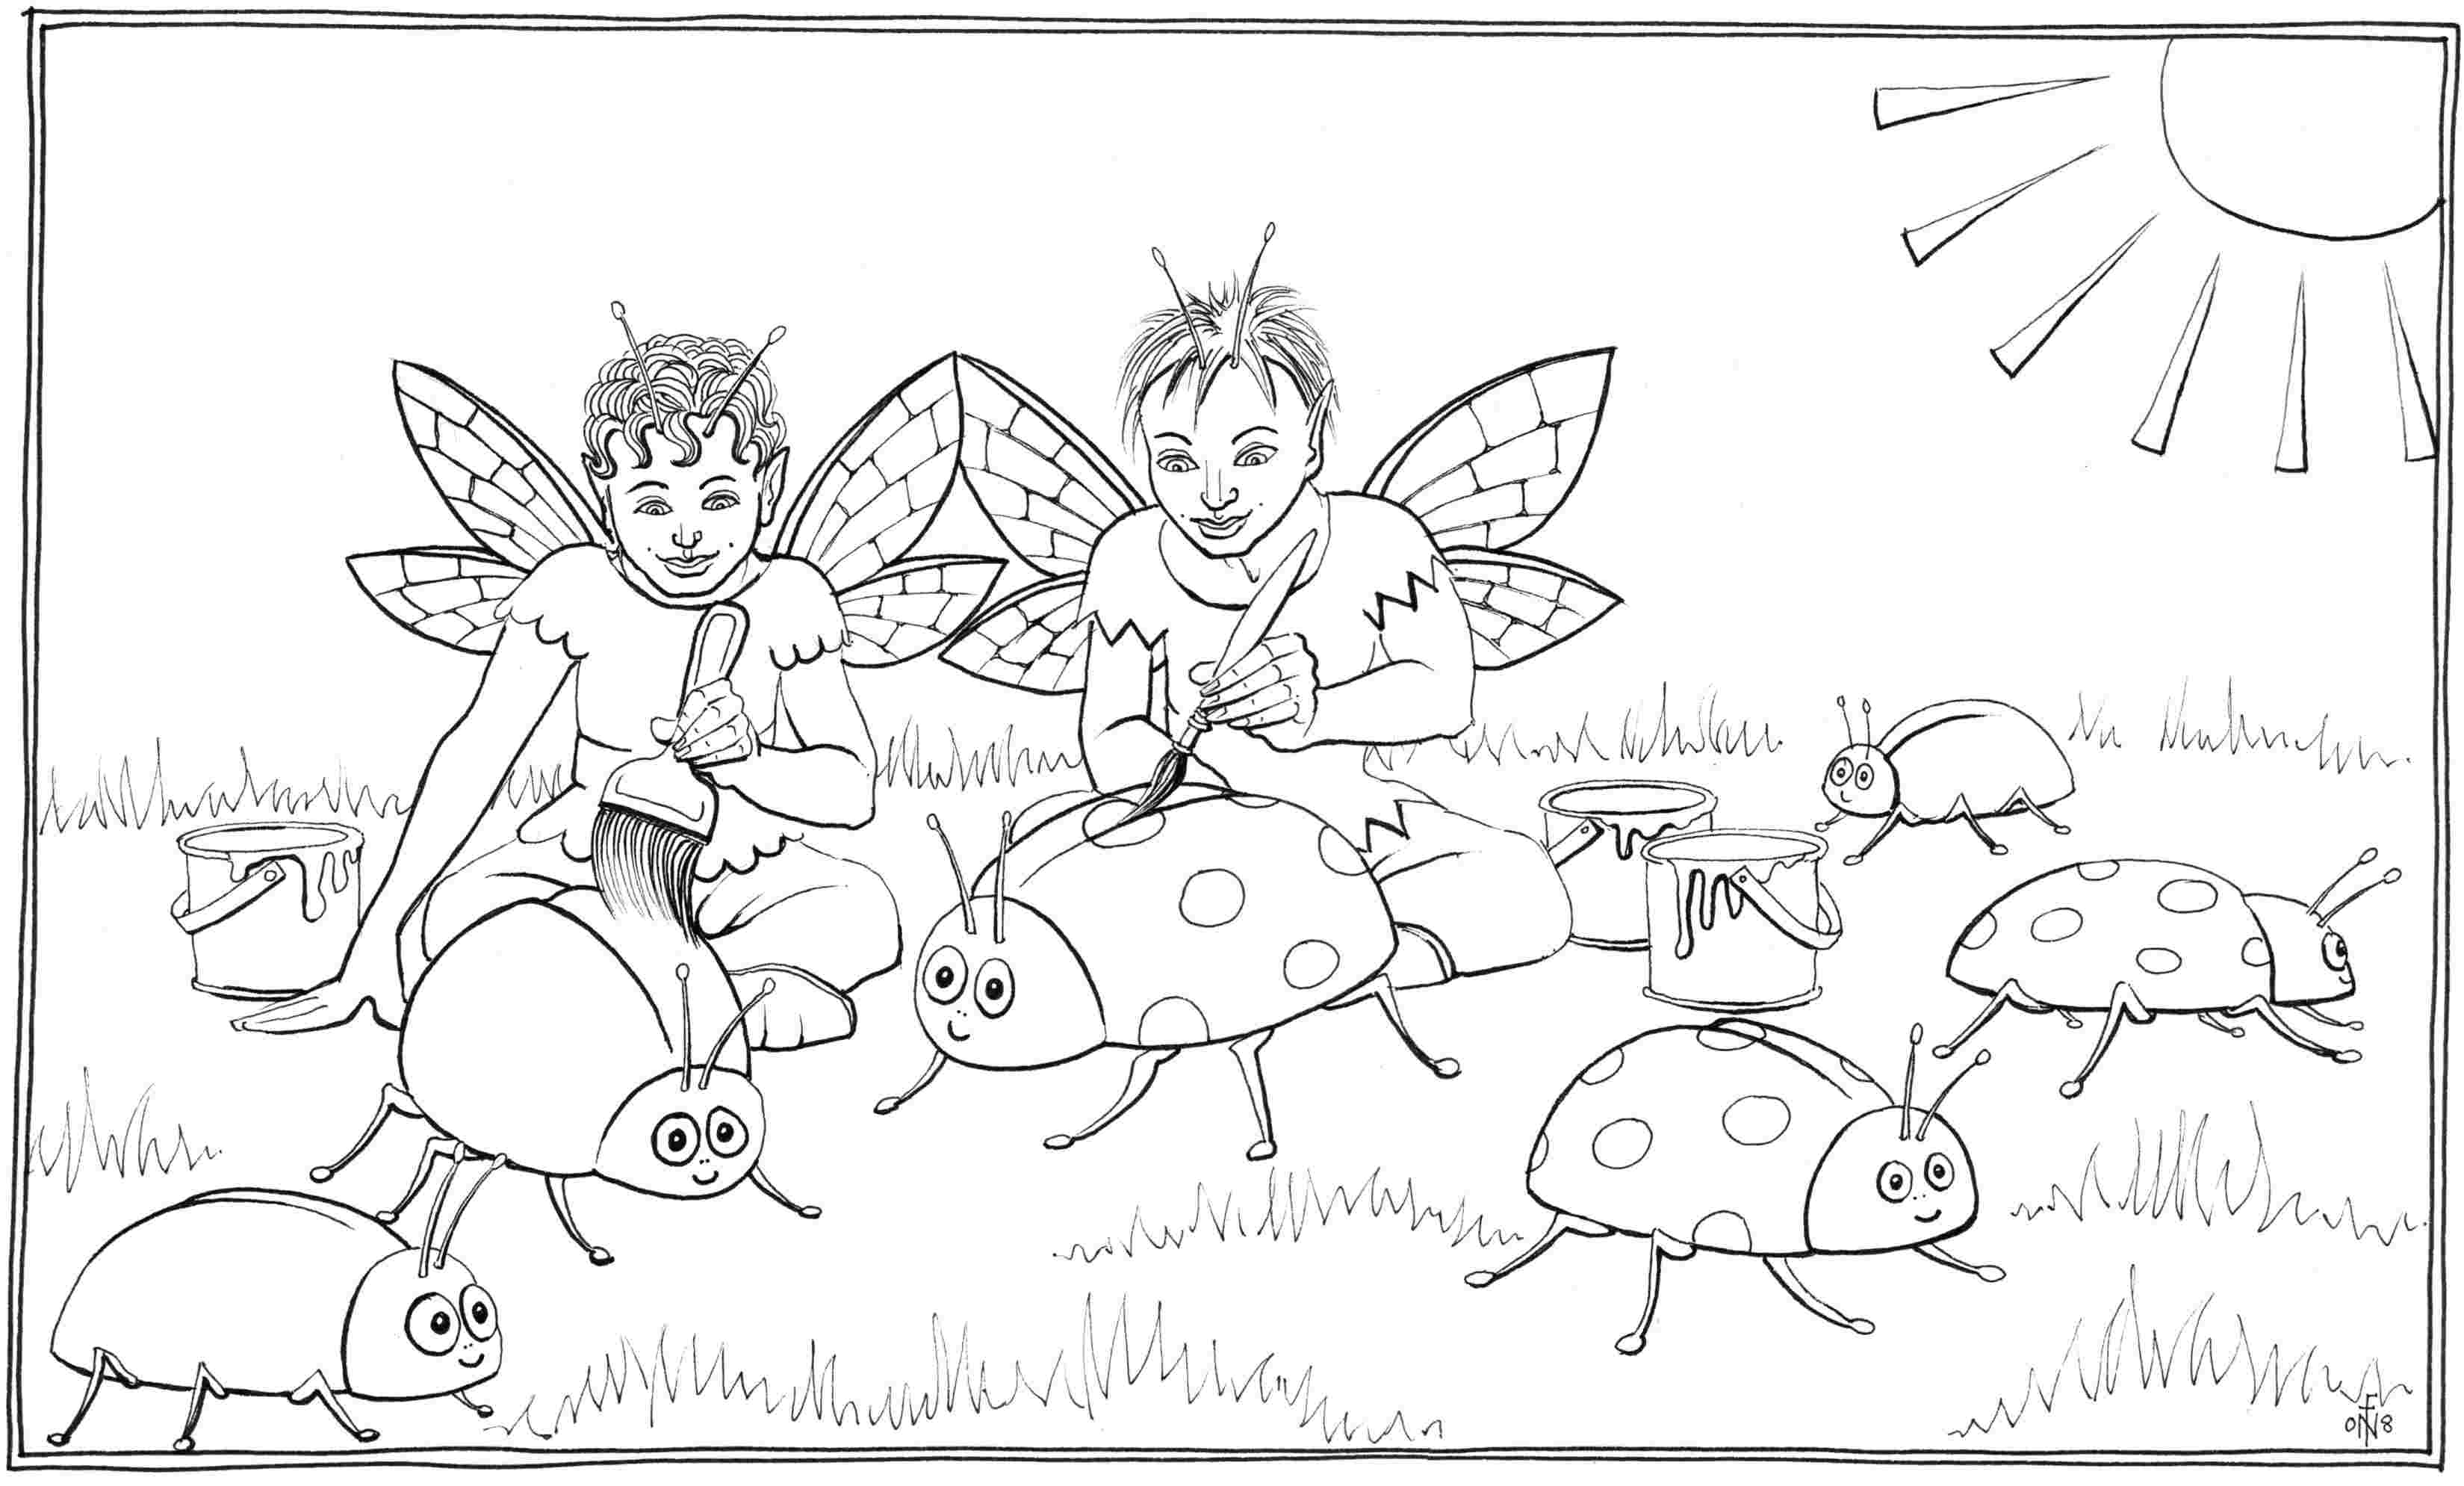 Painting Ladybirds - colouring-in drawing - to download, right click and save, print out and colour in!